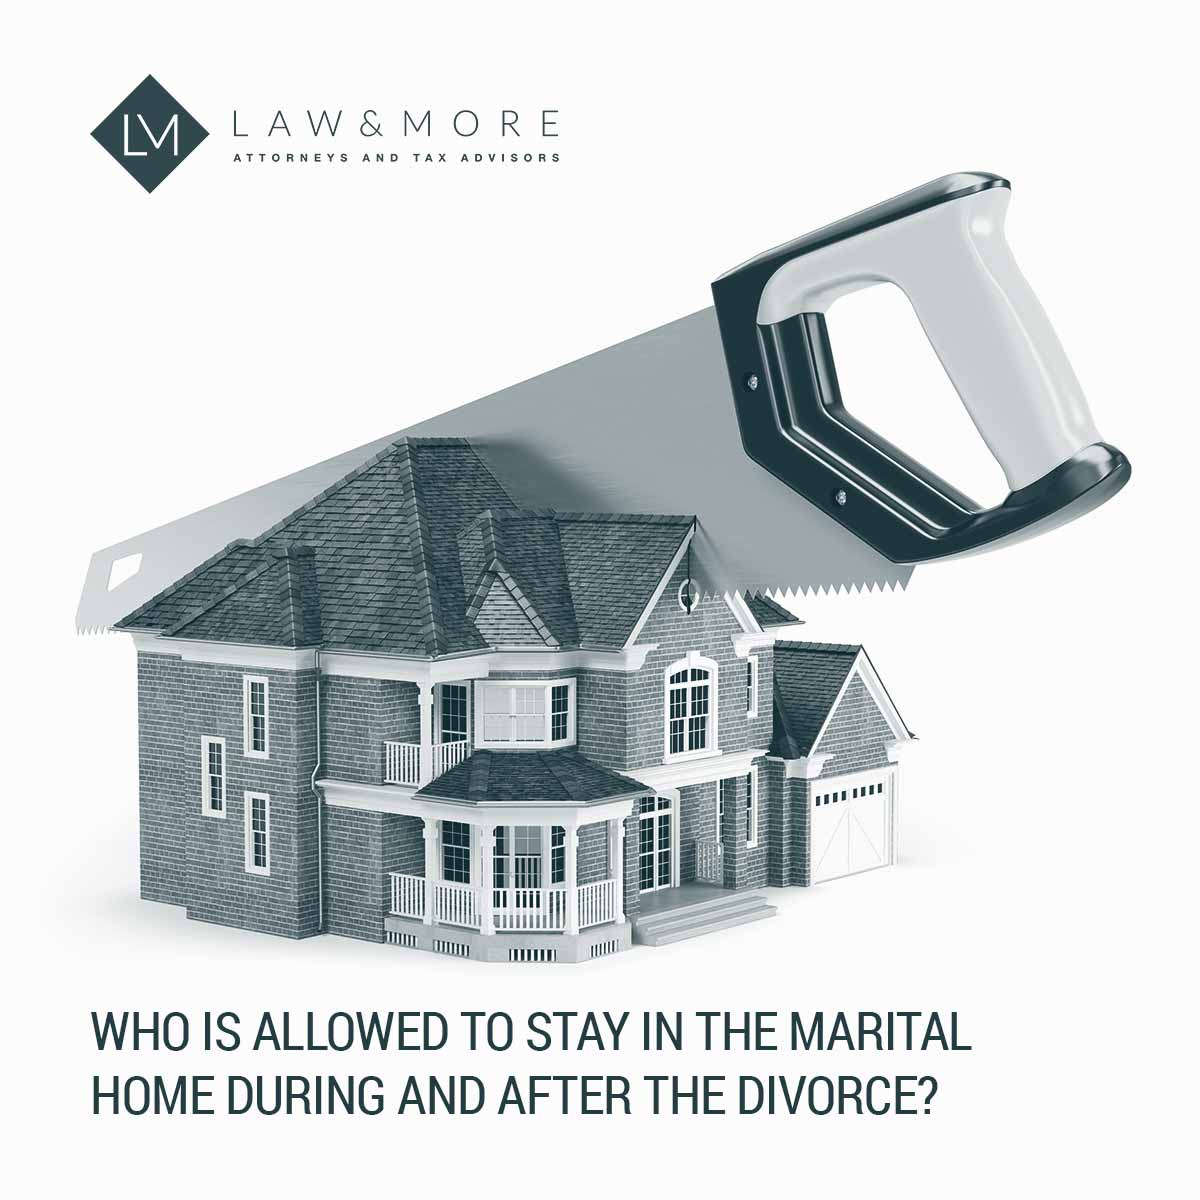 Who is allowed to stay in the marital home during and after the divorce?